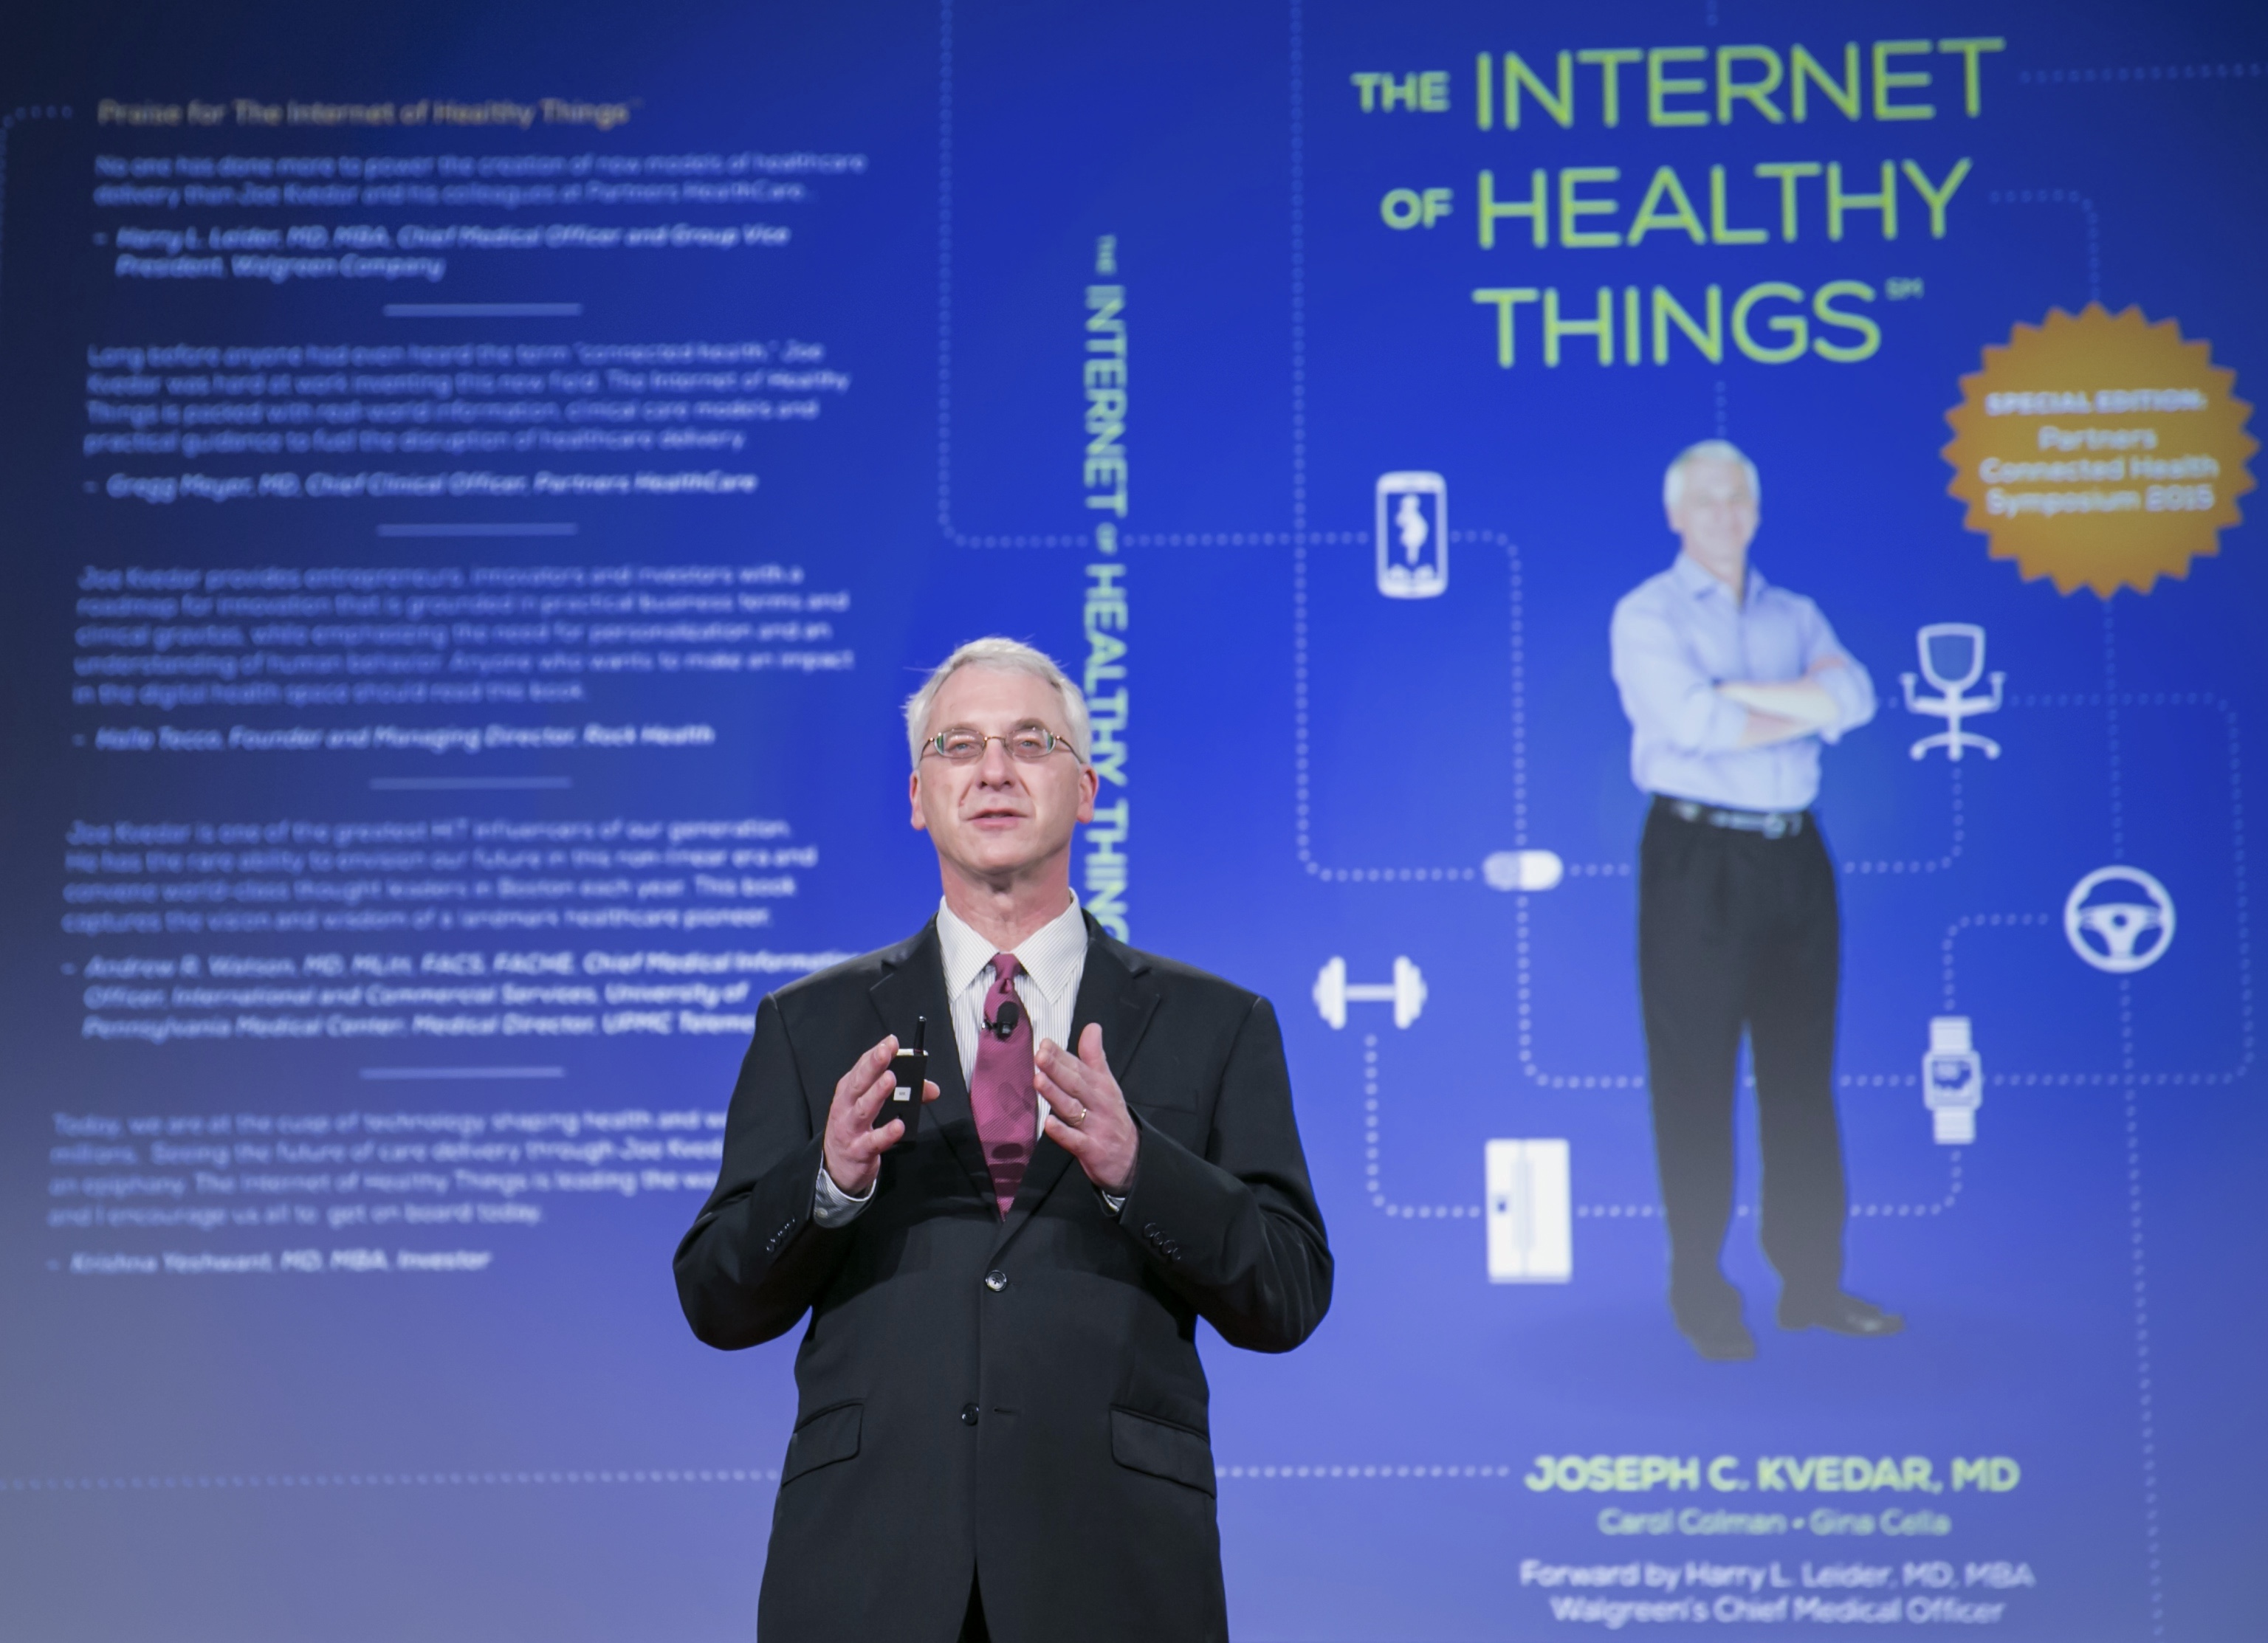 Kvedar, 'The Internet of Healthy Things' Symposium presentation